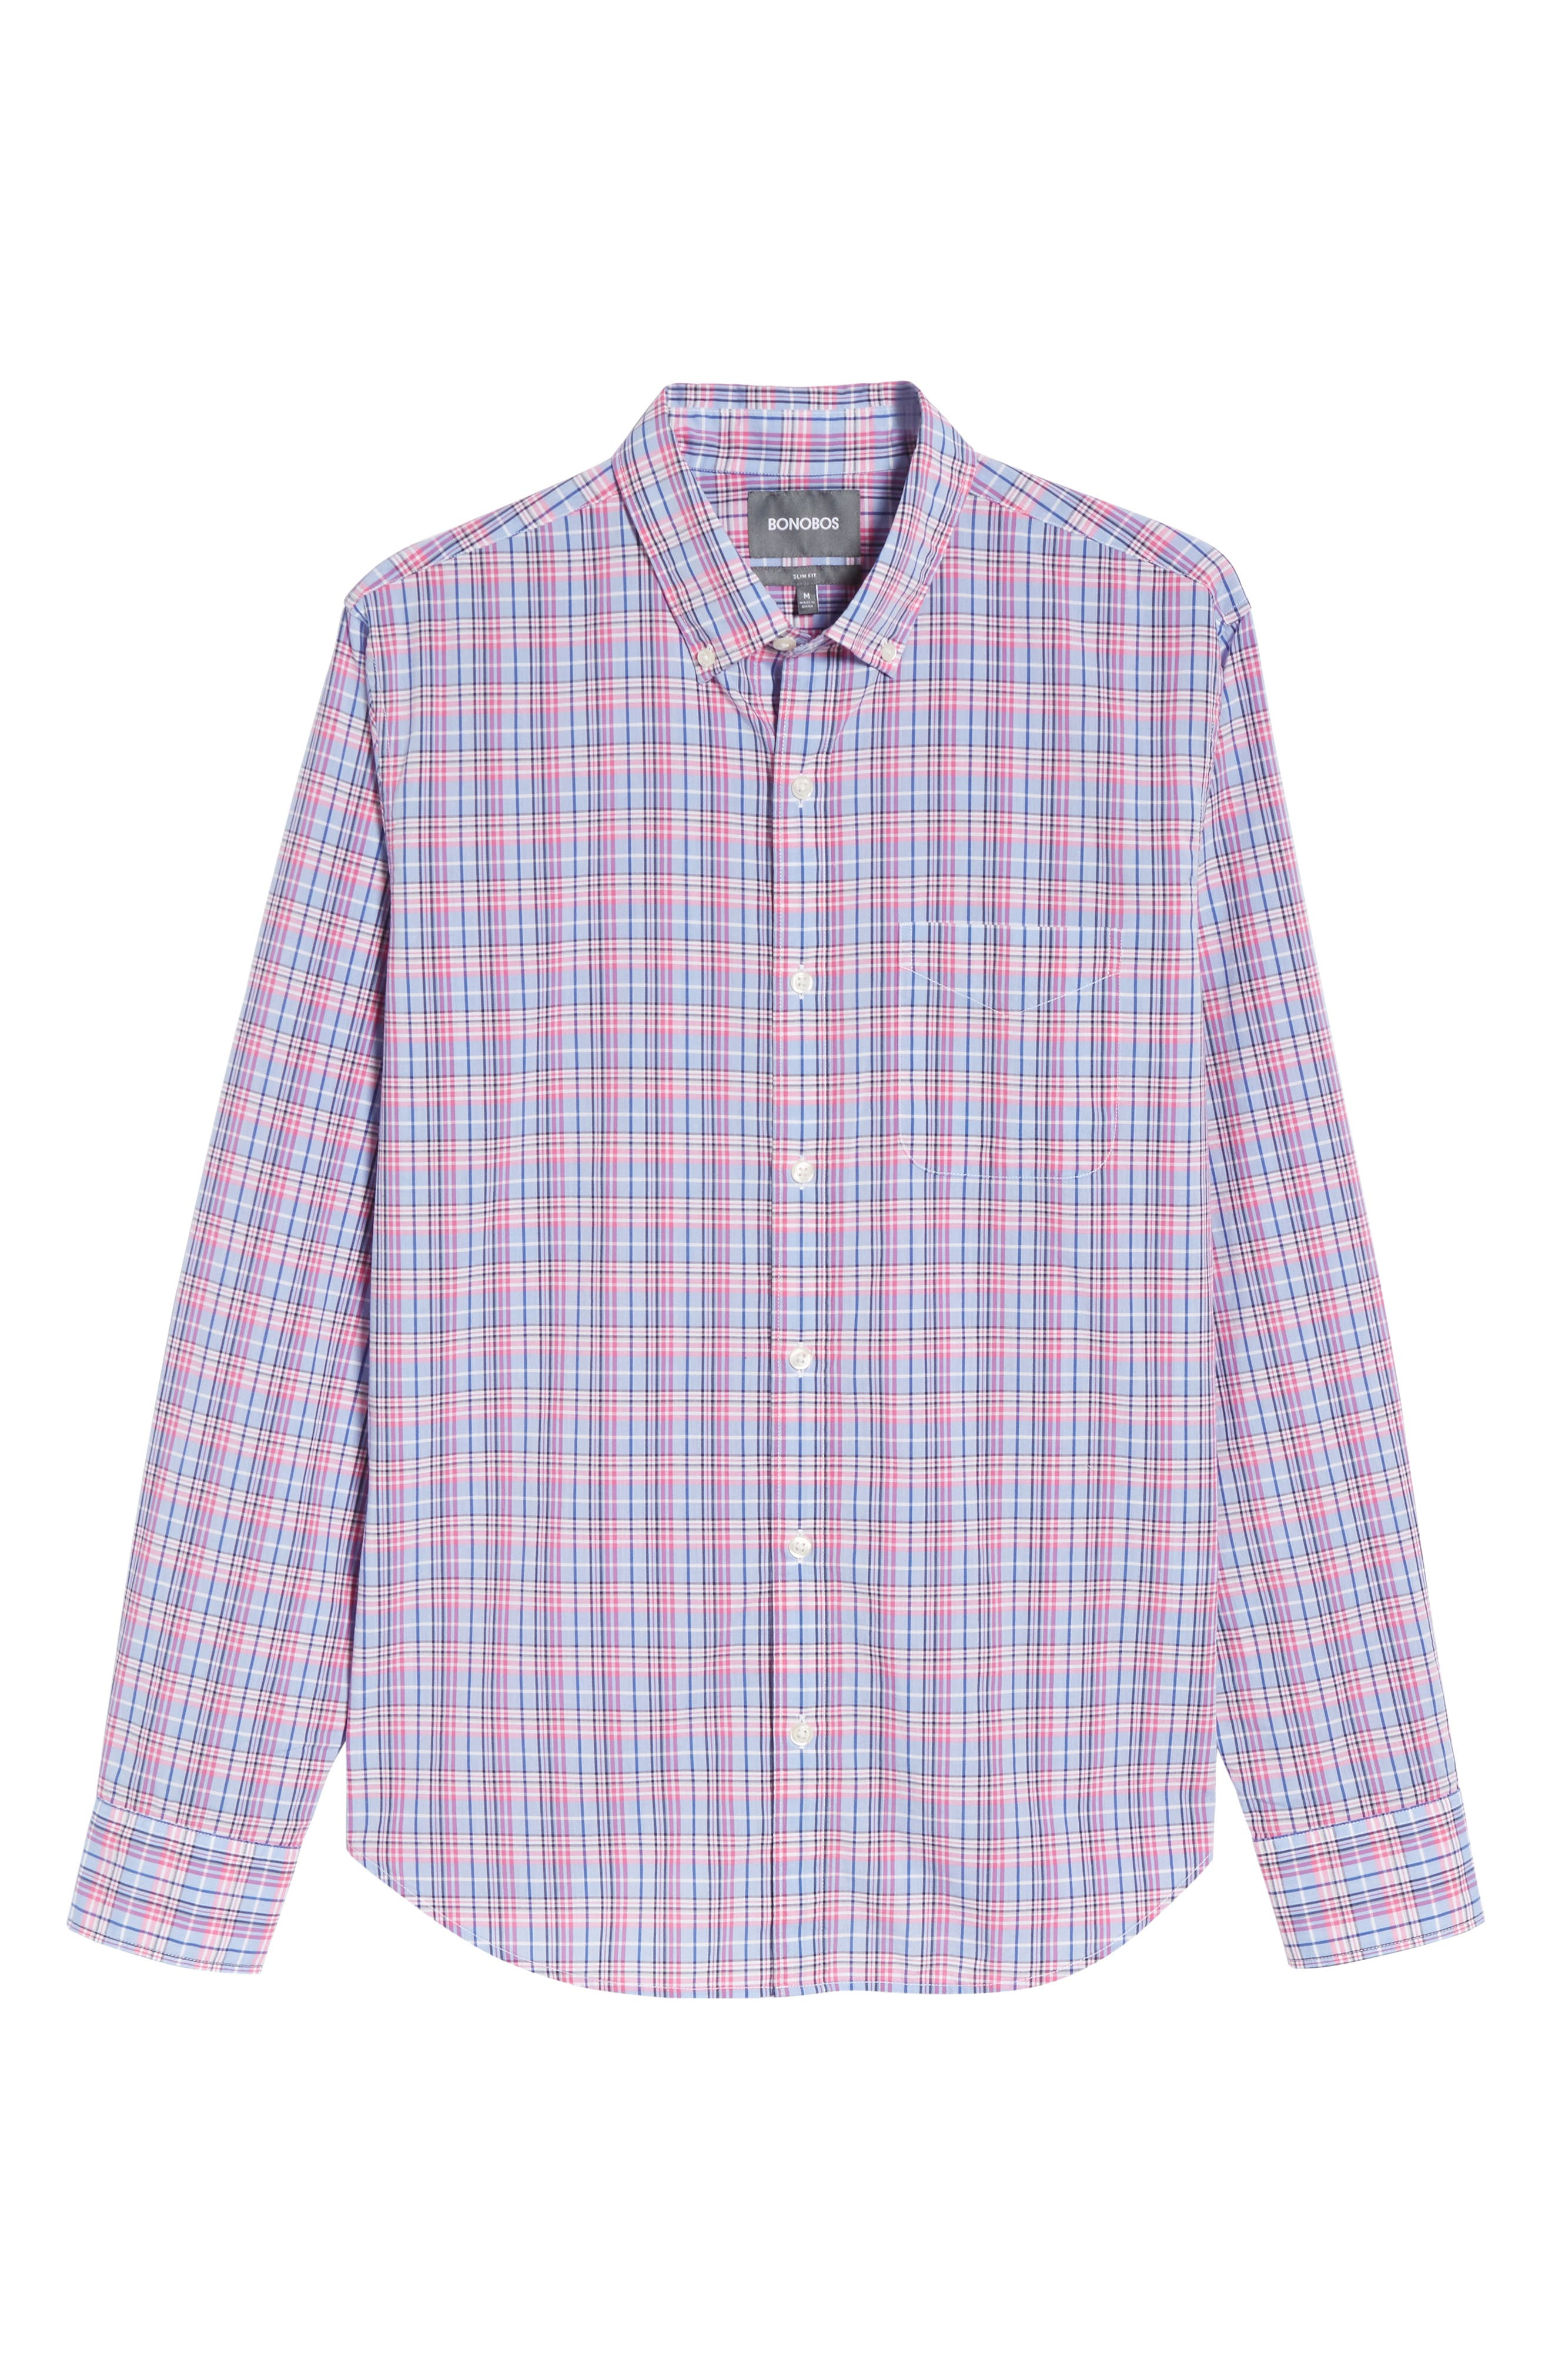 Summerweight Slim Fit Plaid Sport Shirt,                             Alternate thumbnail 6, color,                             Basswood Plaid - Pink Rocket